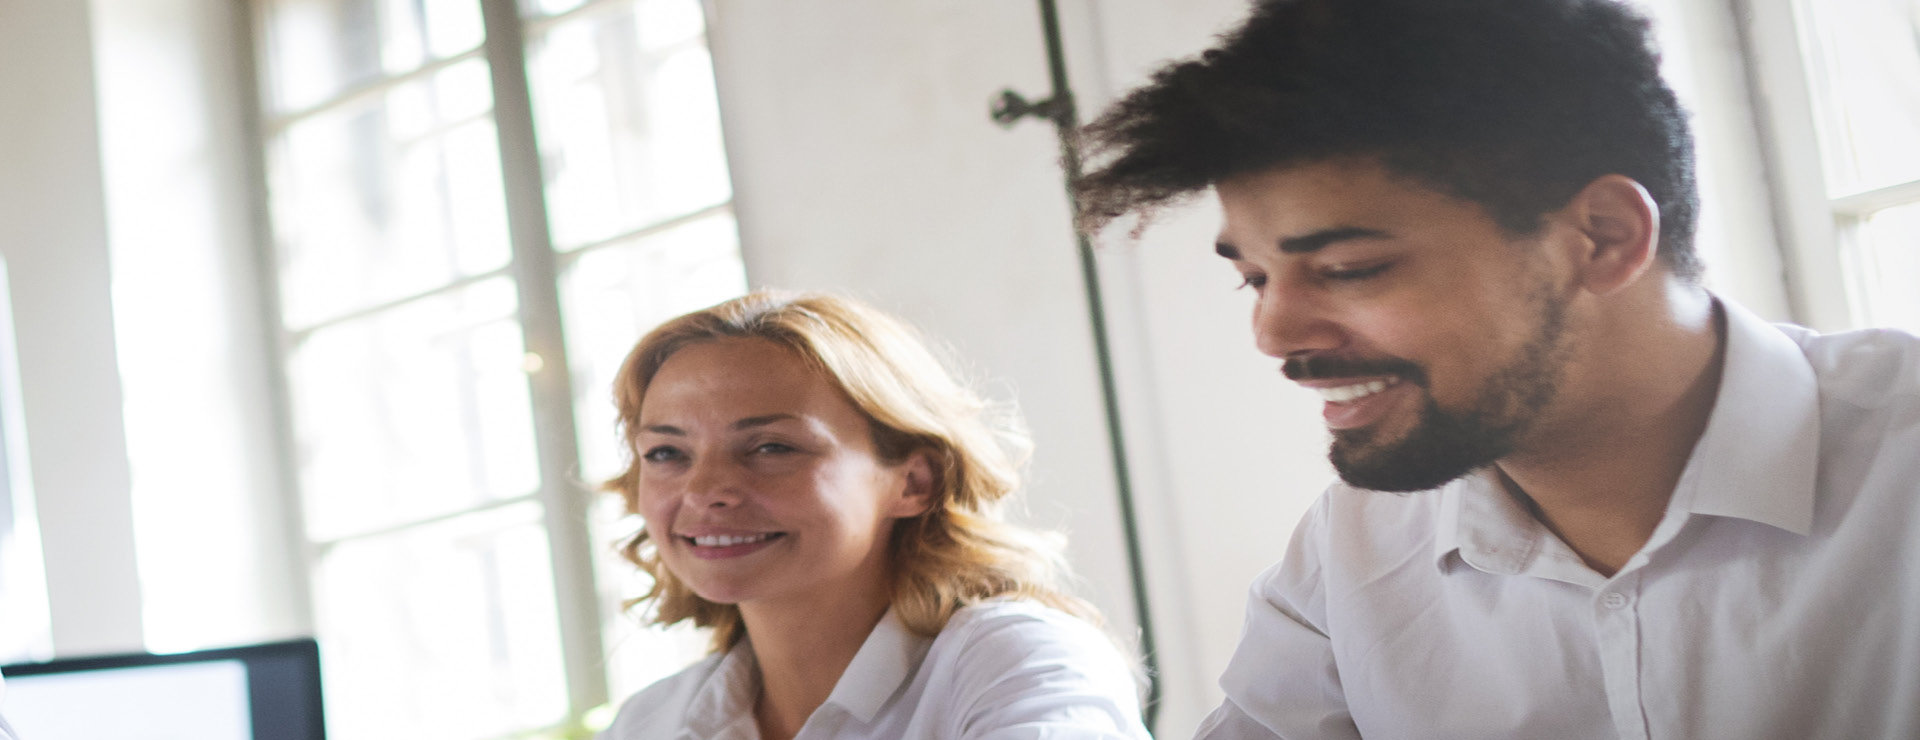 two people smiling in a meeting